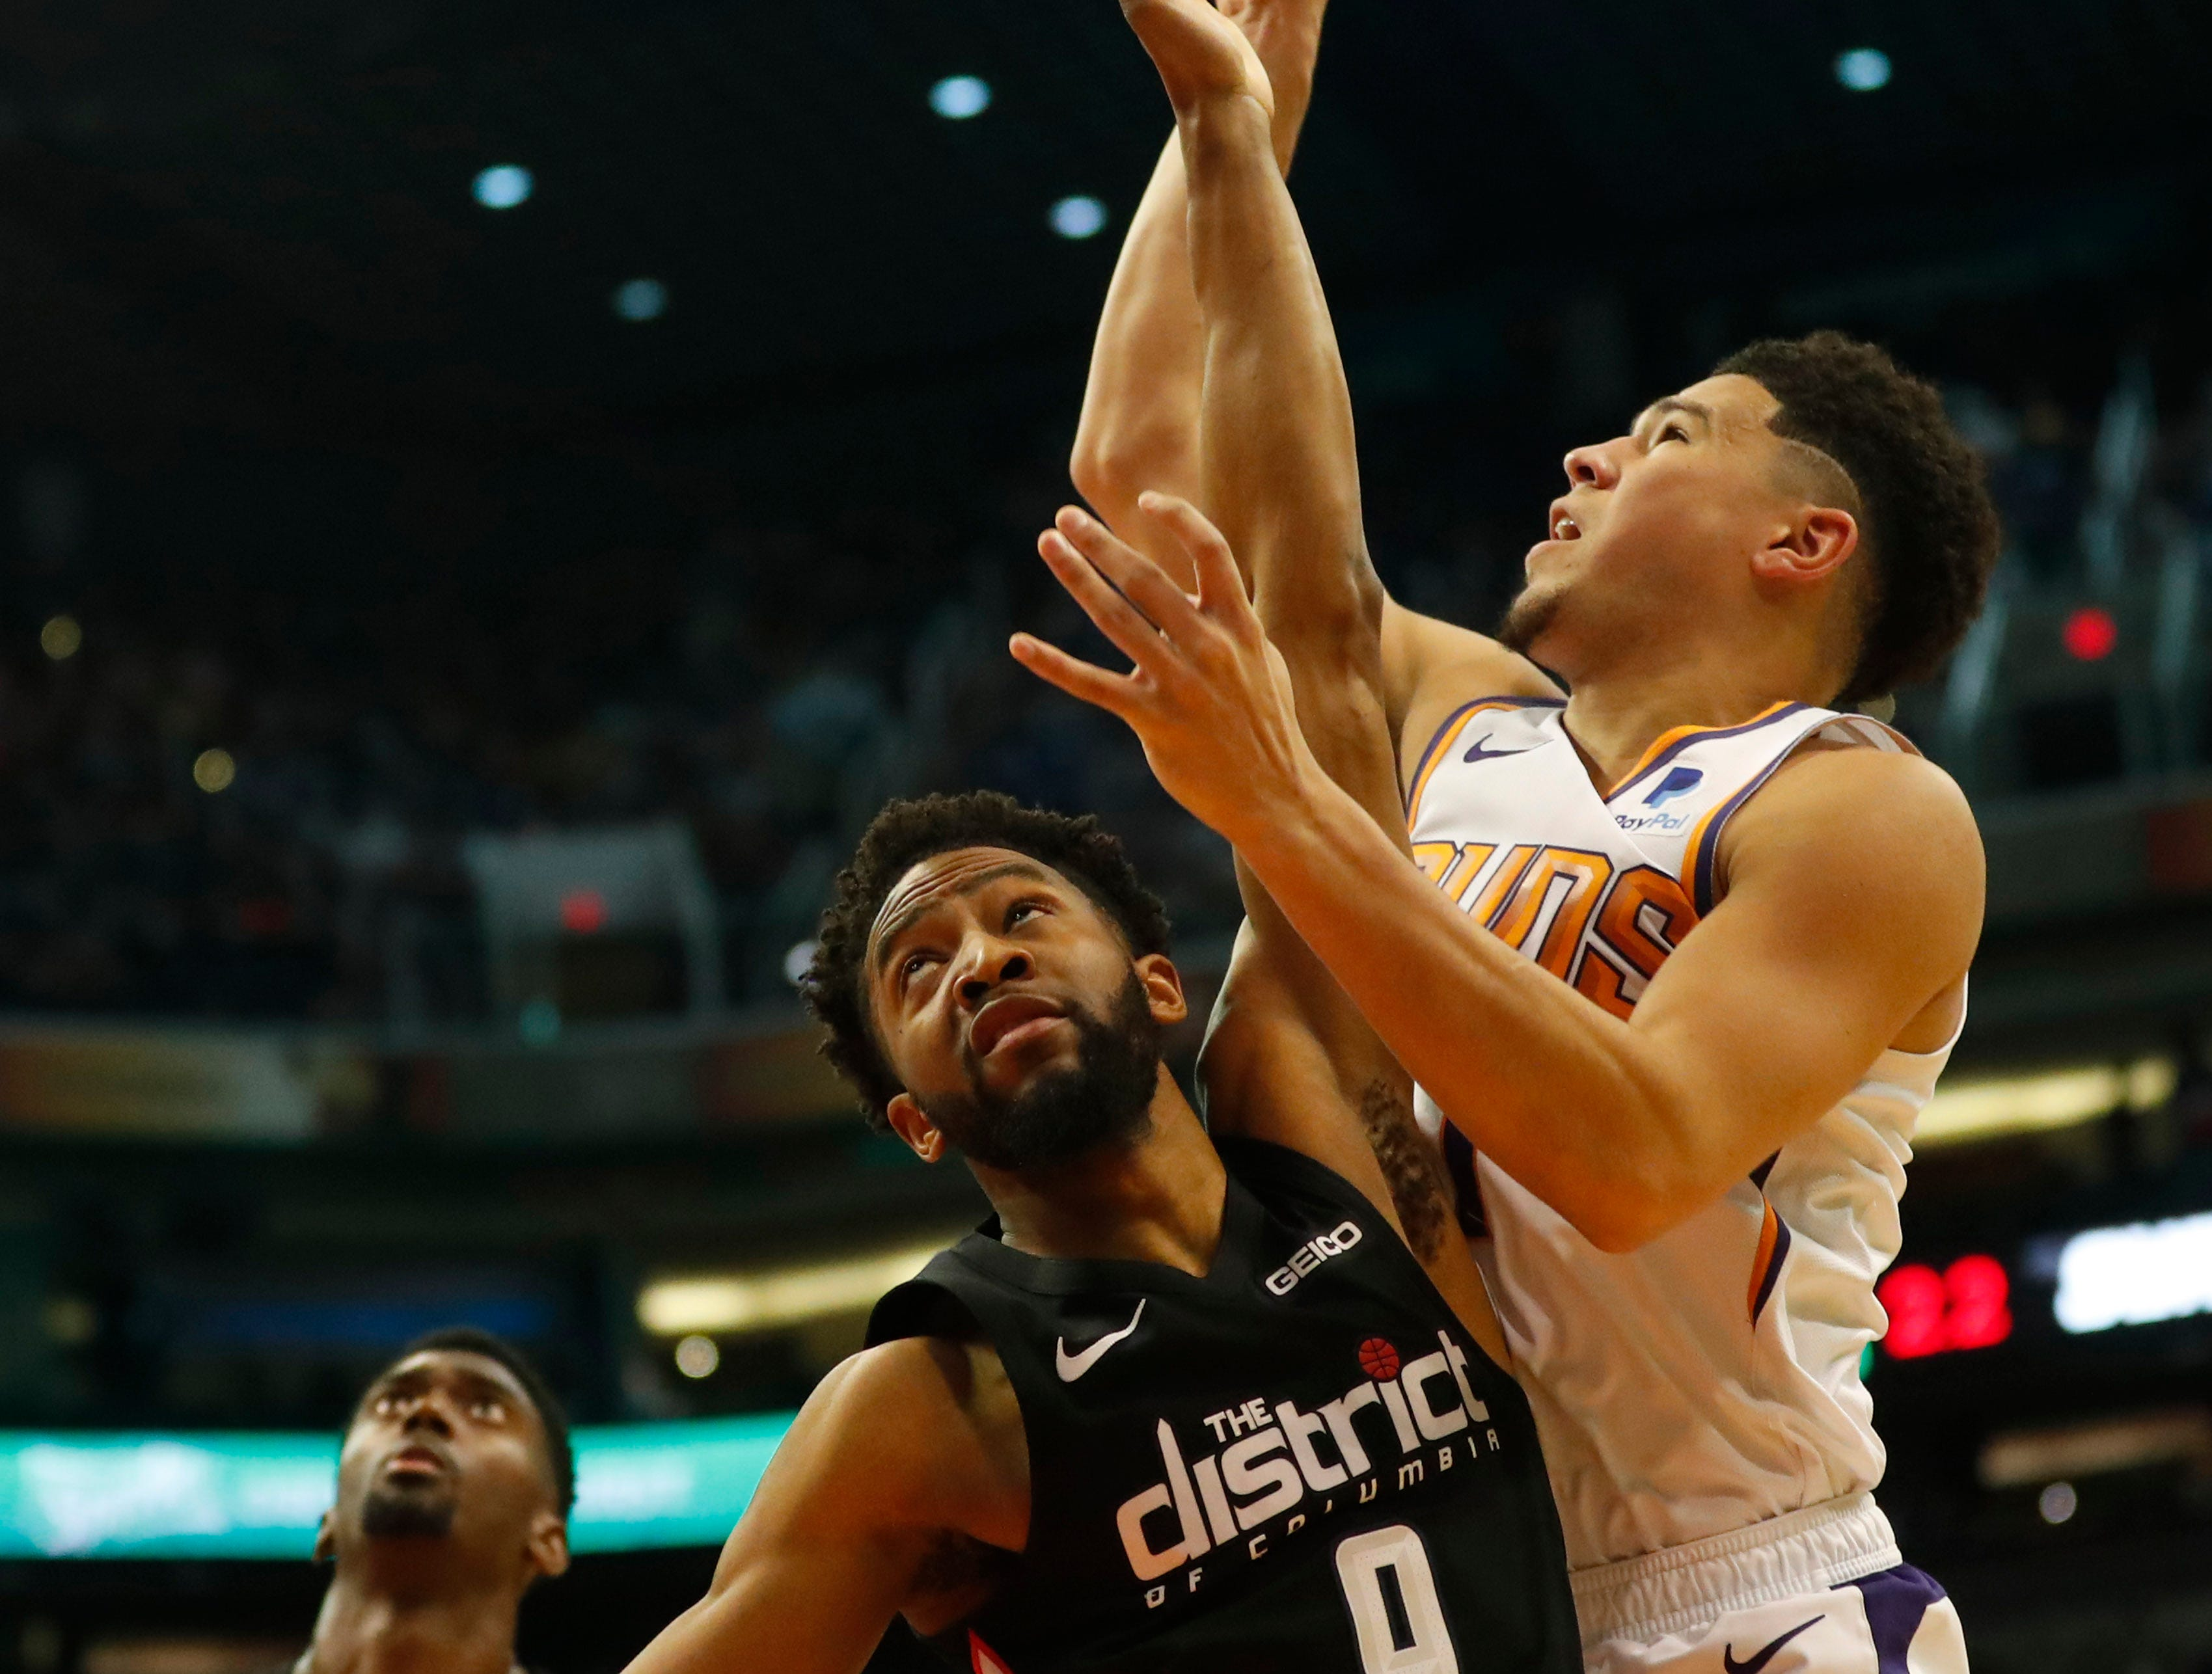 Phoenix Suns guard Devin Booker (1) watches his shot while defended by Washington Wizards guard Chasson Randle (9) during the first quarter in Phoenix March 27, 2019.